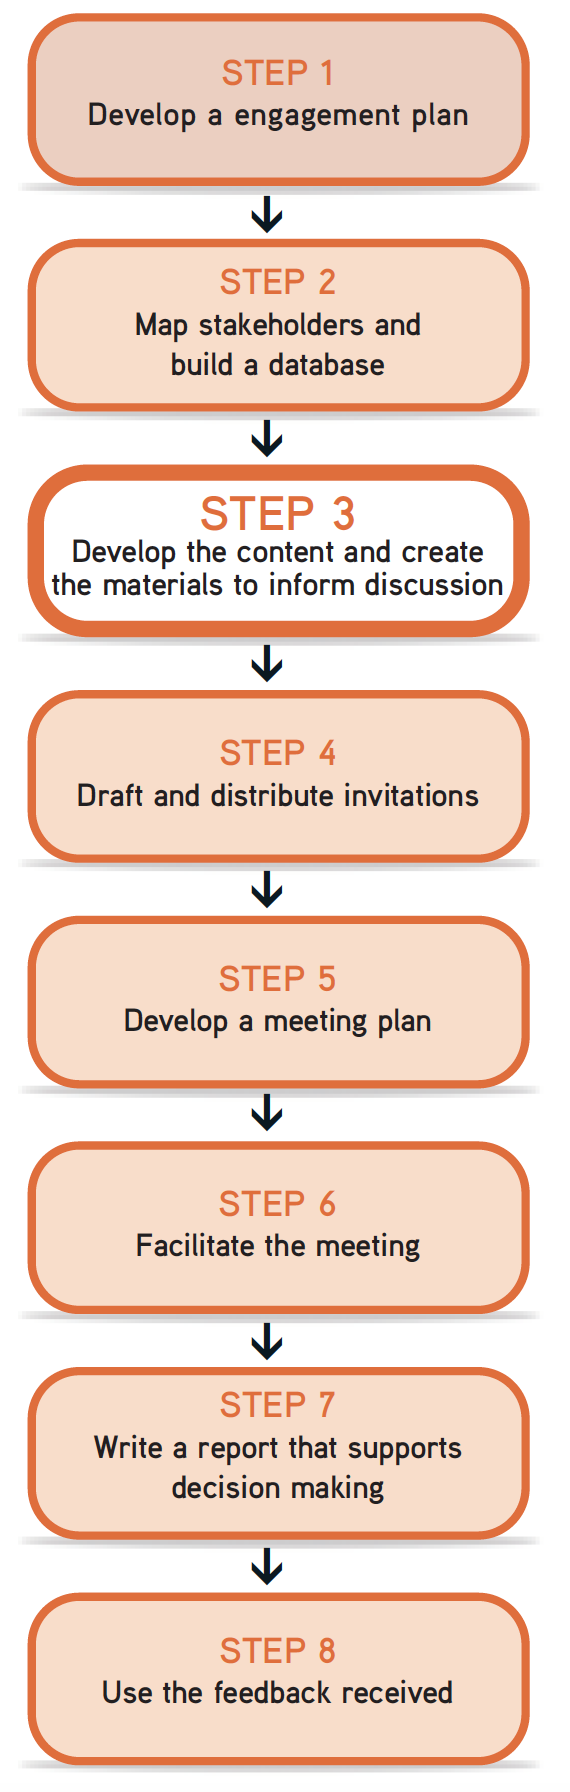 "Picture of steps flow chart, with Step 3 ""Develop the content and create the materials to inform discussion"" highlighted."